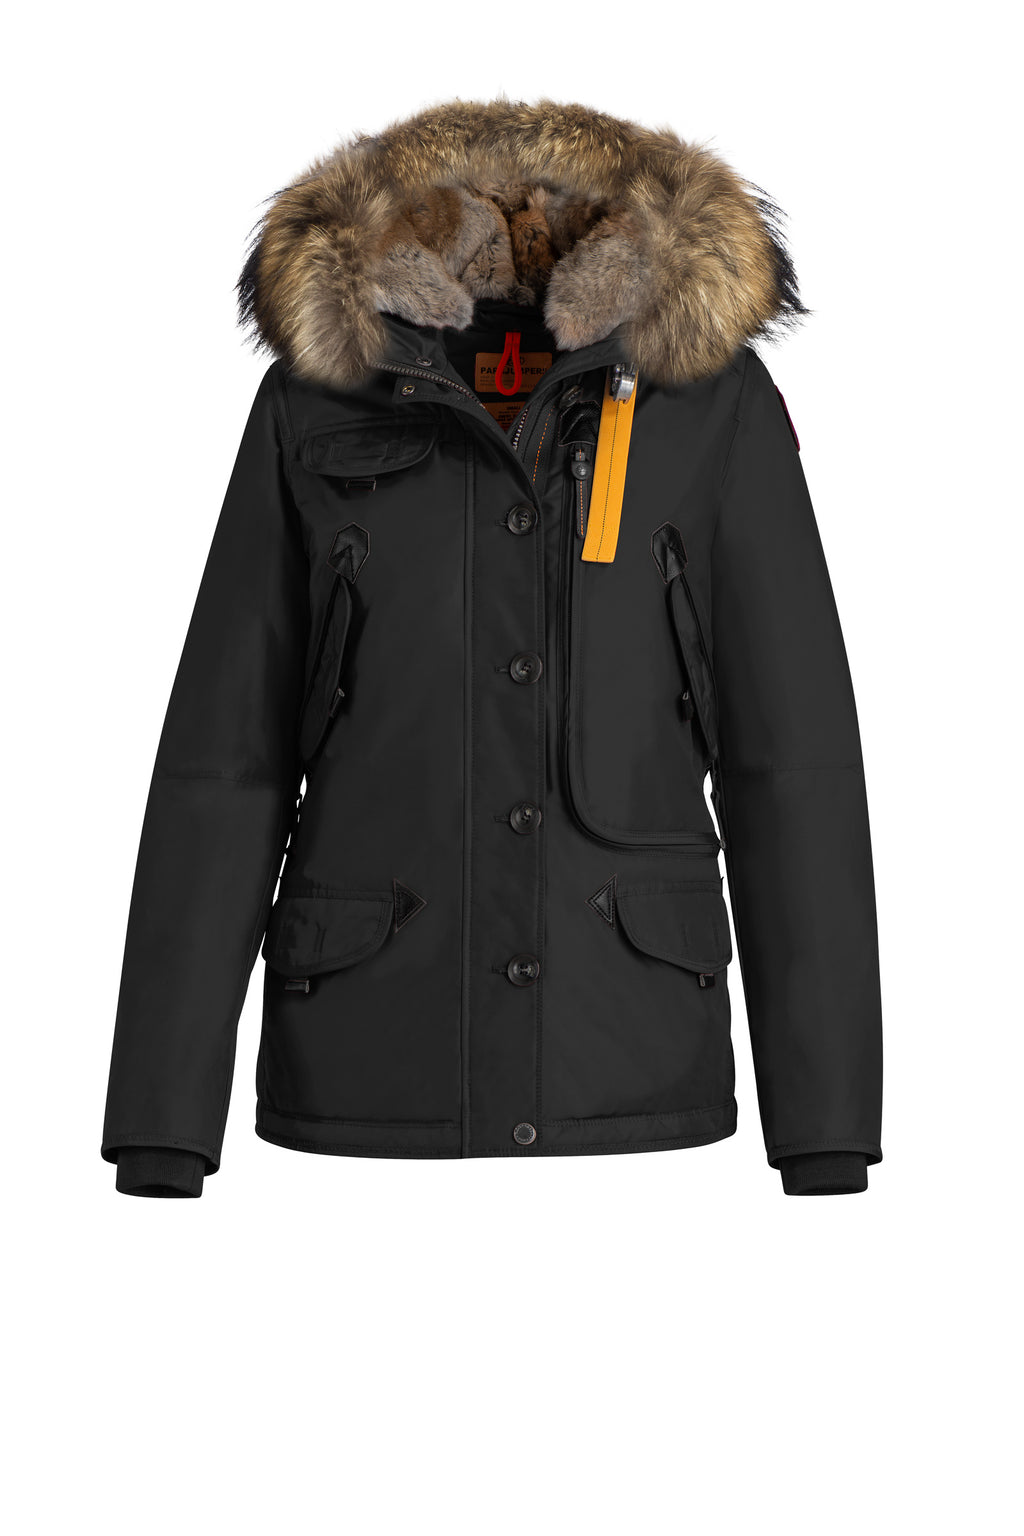 Parajumpers Doris Jacket in Black - BOUTIQUE TAG